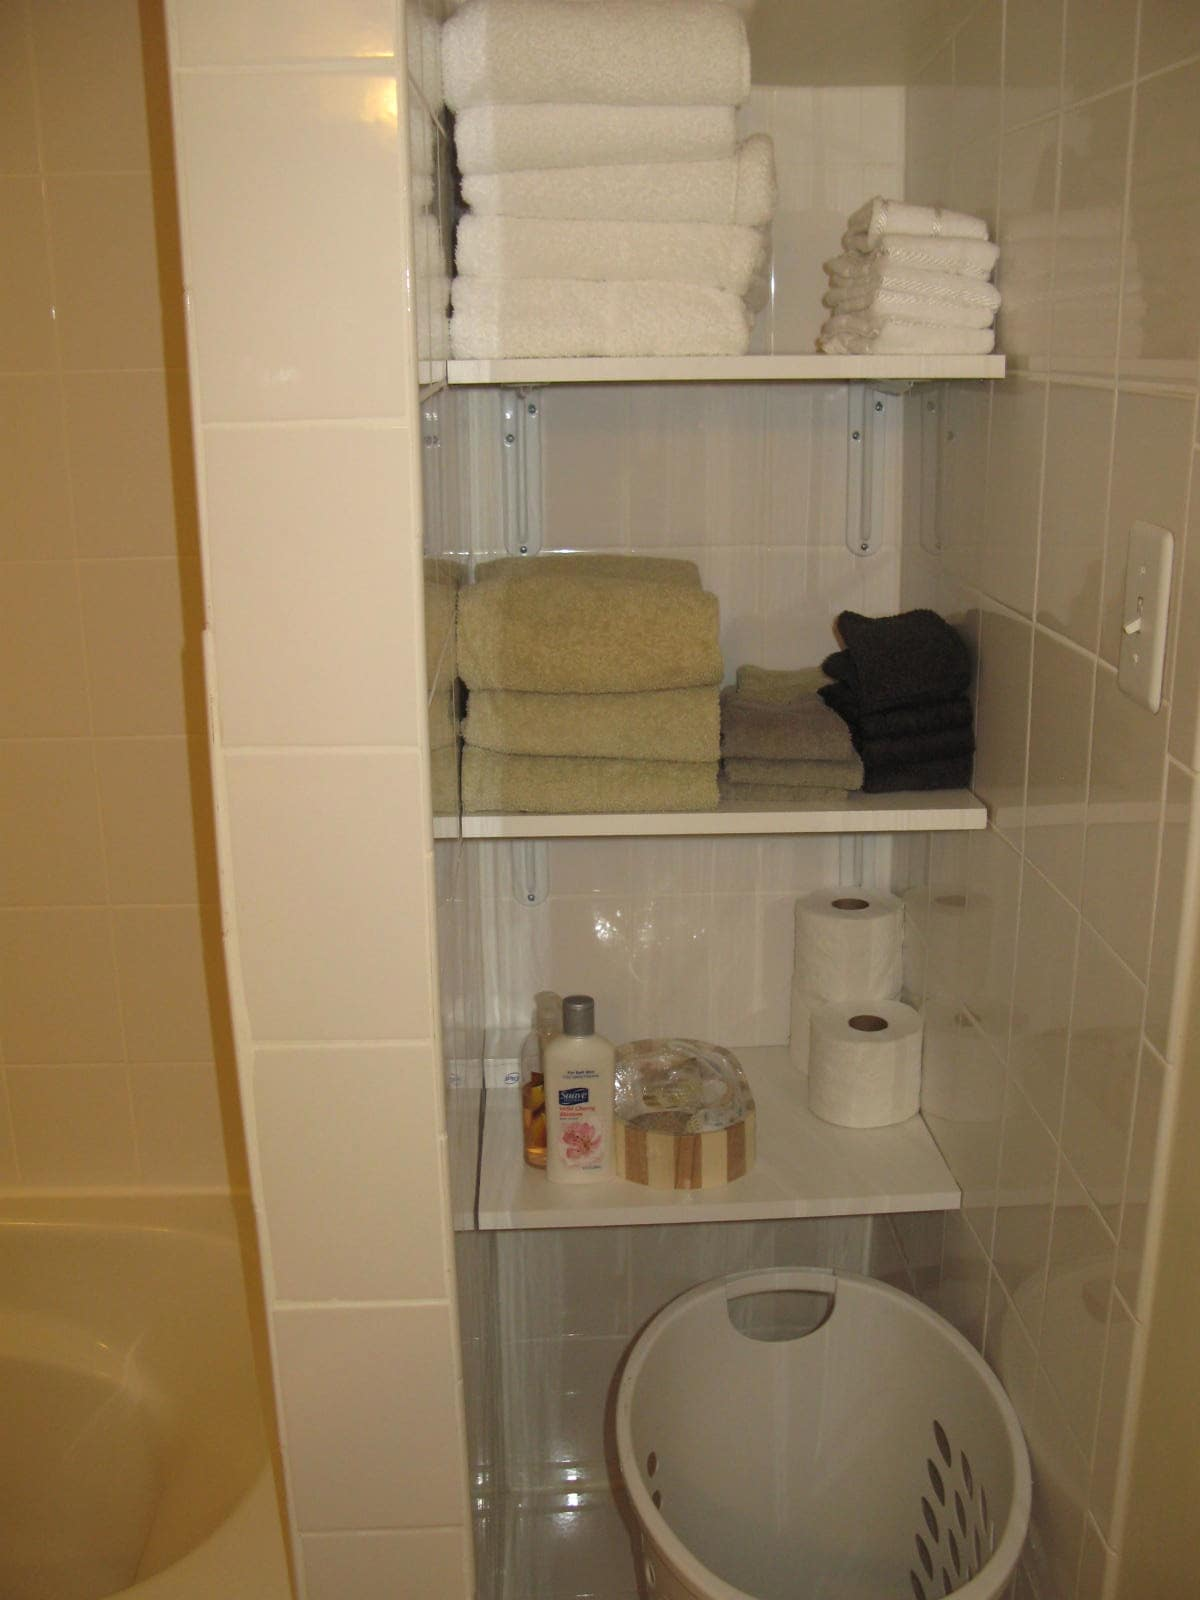 towels, toiletries stocked for your use